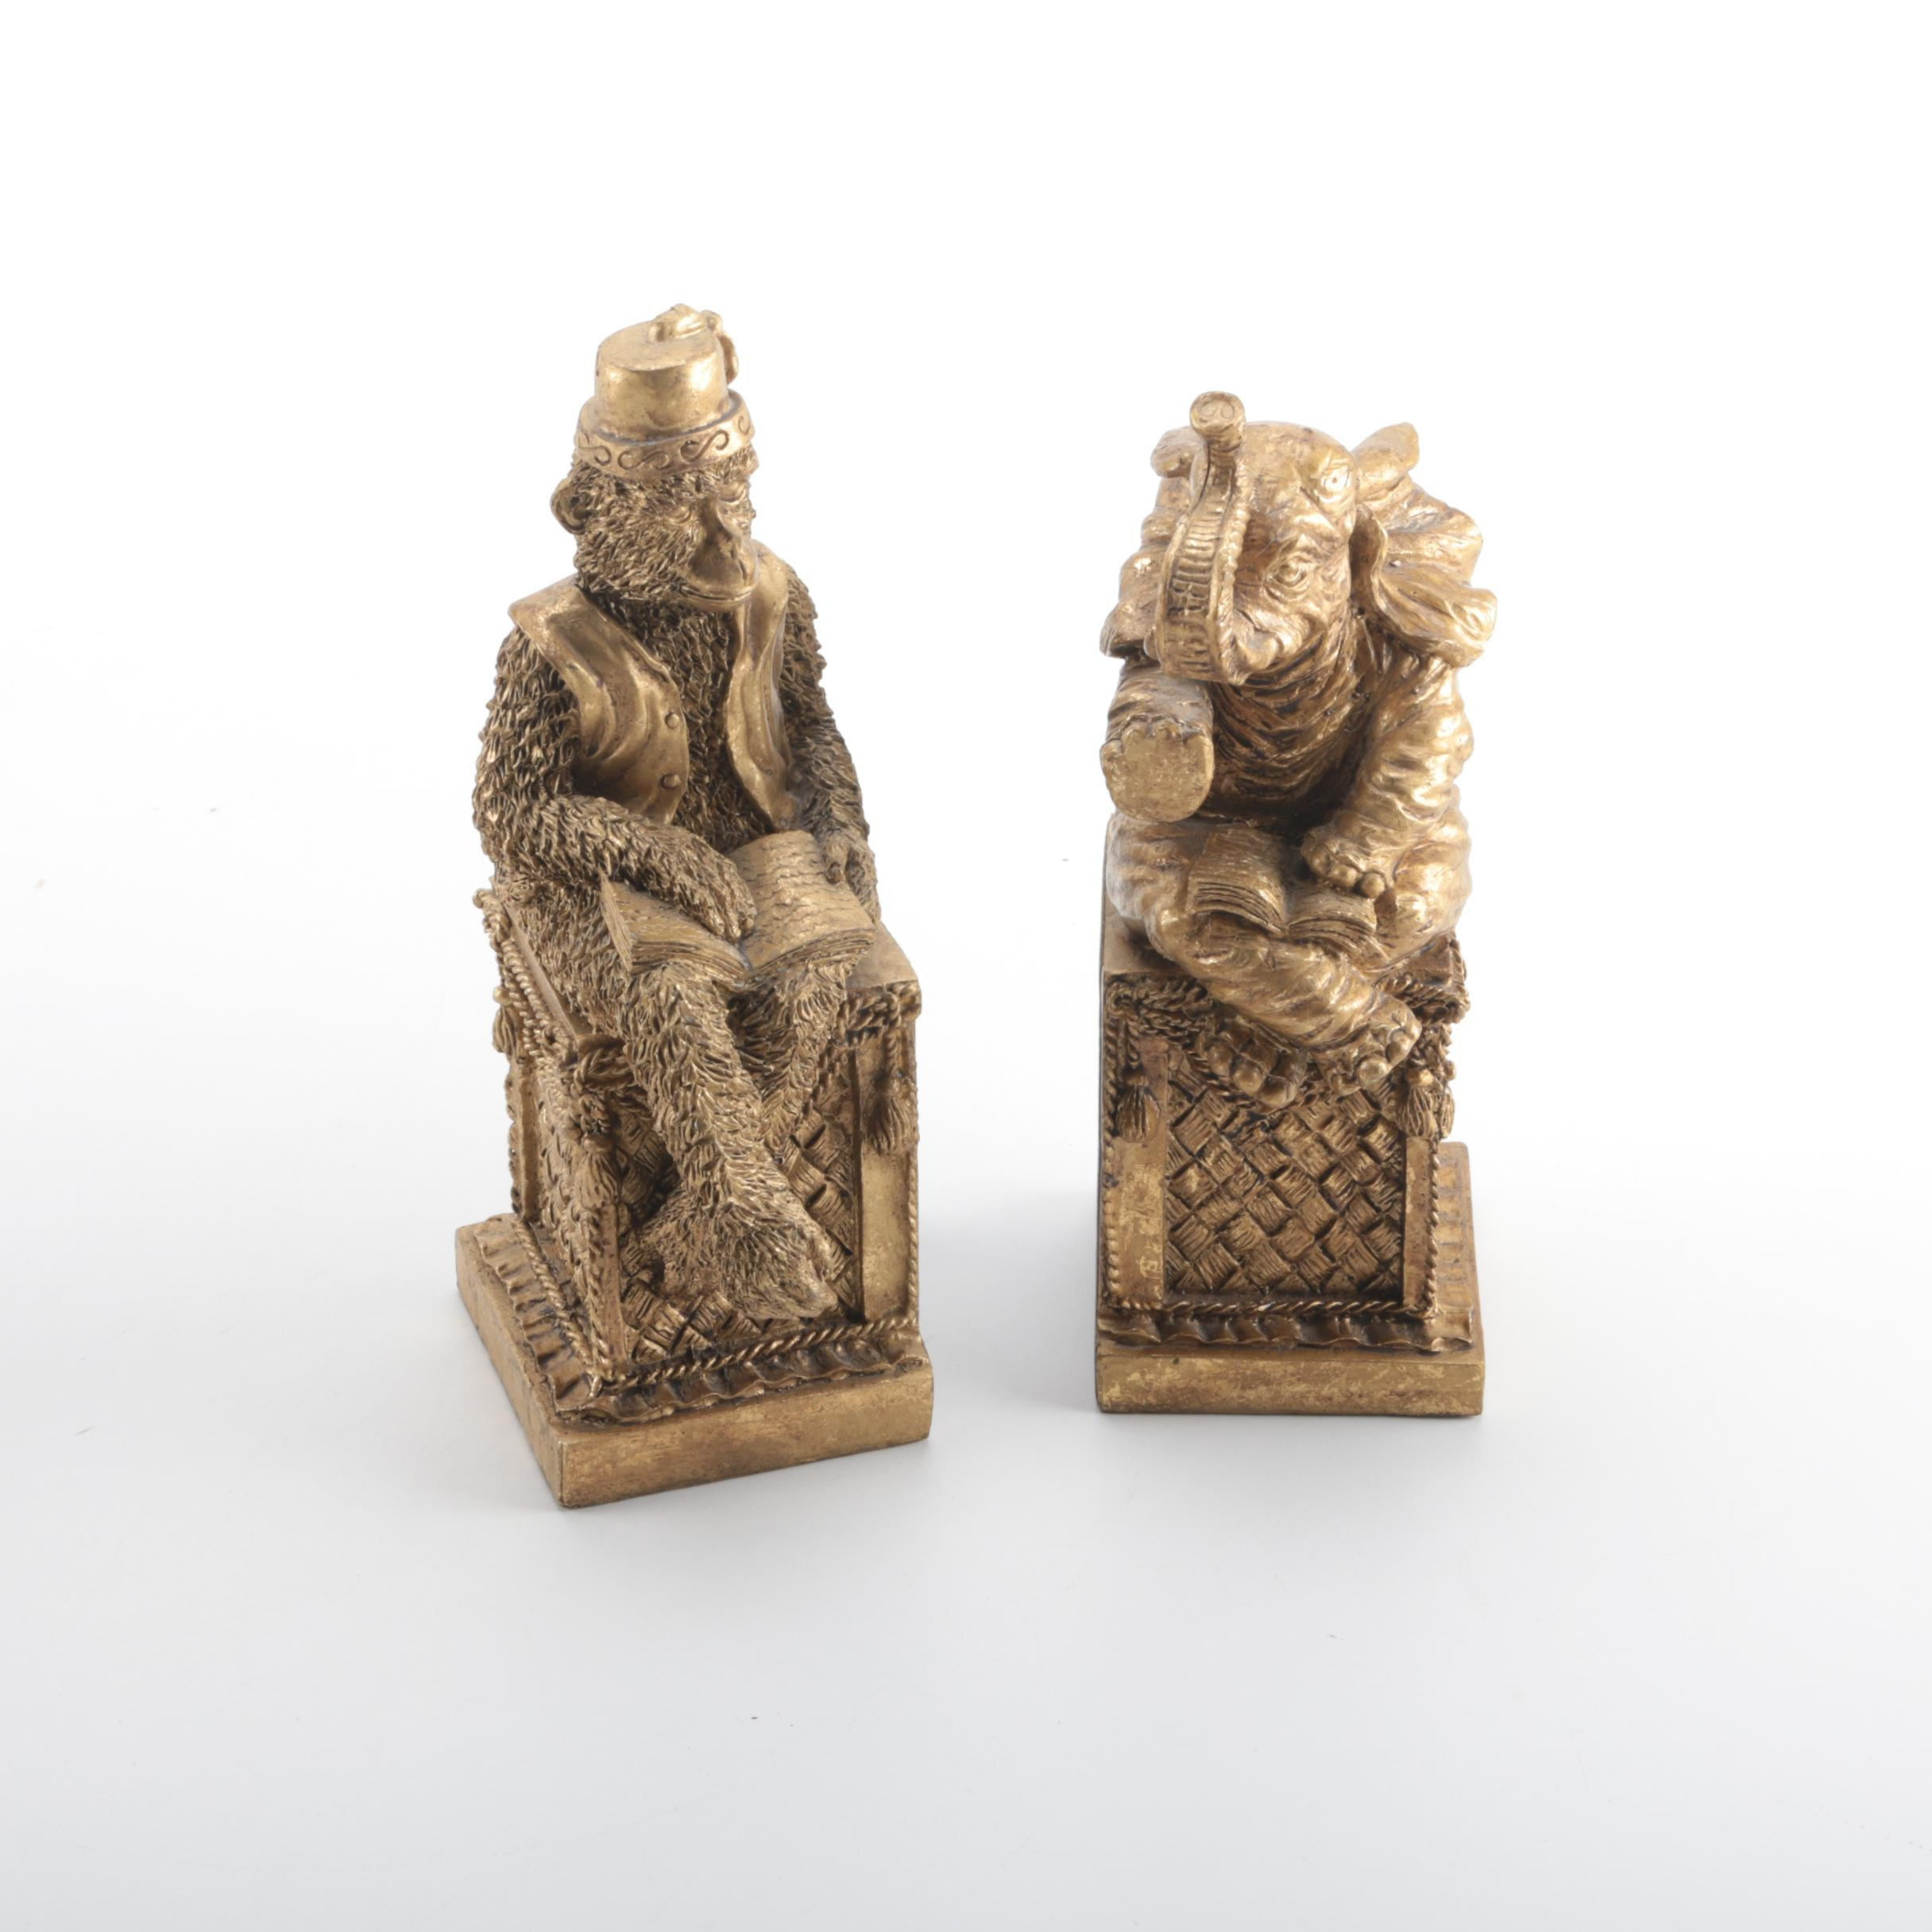 Southeast Asian Style Figurines